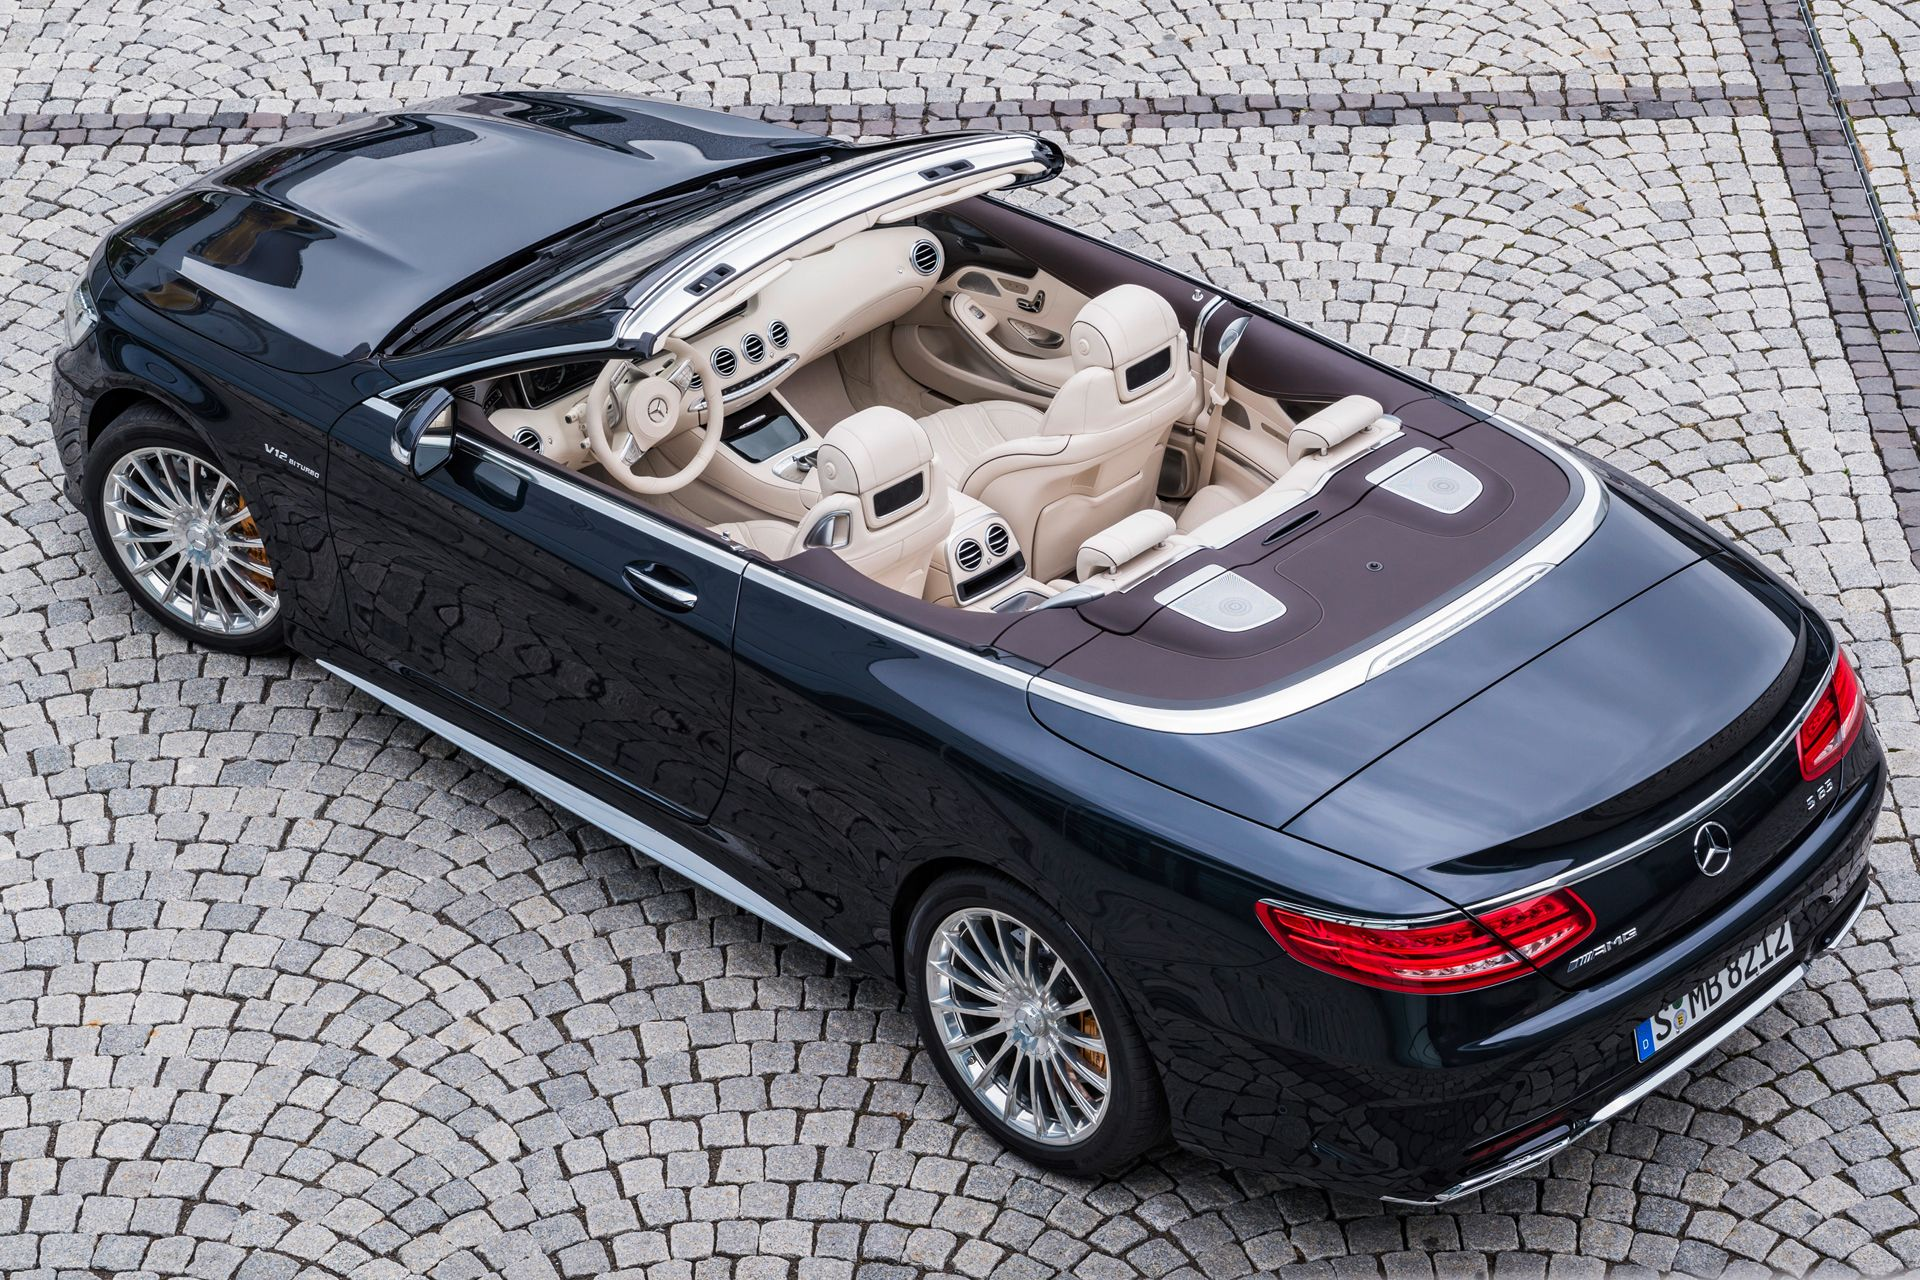 mercedes s class cabriolet review can it make the s class cool again british gq. Black Bedroom Furniture Sets. Home Design Ideas